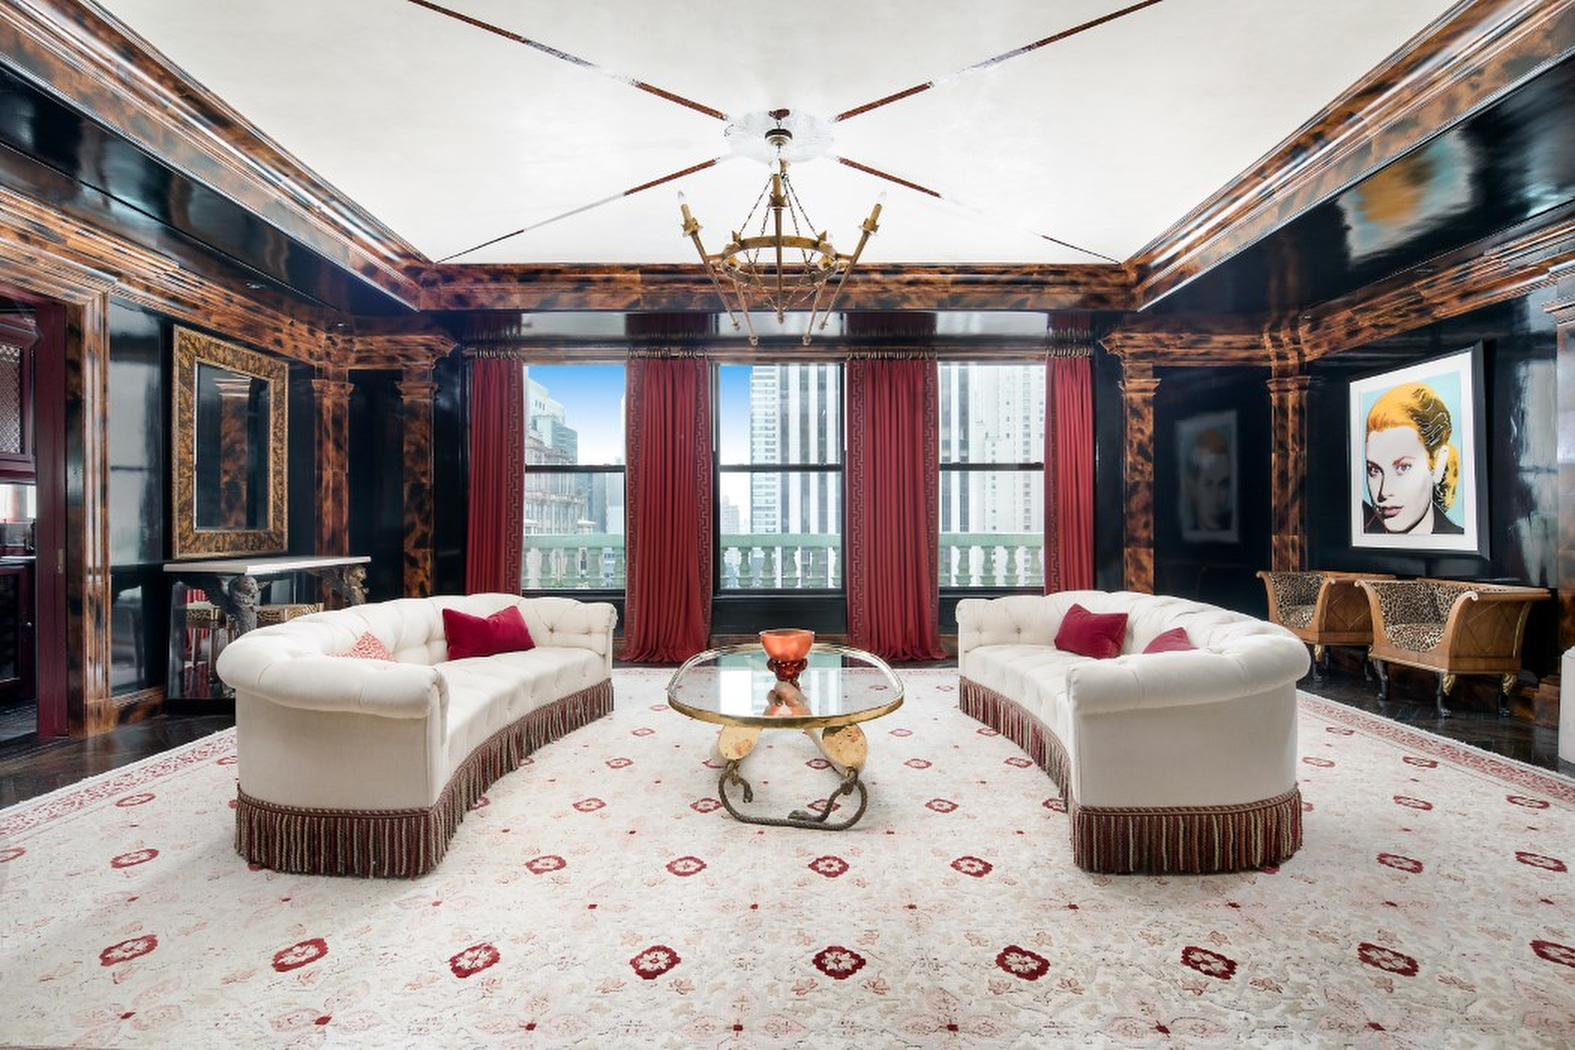 "Fashion designer Tommy Hilfiger has finally sold his extravagant New York-based penthouse apartment after knocking nearly FIFTY million dollars off the asking price!  The four-bedroom home has reportedly sold for a reported .35 million. It originally went up for sale for a staggering  million.  Insiders claim the home's exquisite furniture is also be included in the deal.  Hilfiger bought the corner duplex for .5 million in 2008, and then tried to flip it for  million a few months later.  The designer and his wife Dee Ocleepo then spent around  million on renovations. In 2013, the 6,050-square-foot home went back on the market for an eye-popping  million.  The price dropped to  million in March 2015 and then  million before dropping to .9 million in April 2016. It was then reduced to  million in September 2017 At one point, real estate insiders claim the apartment was ""unsellable.""  The art-filled corner penthouse features Central Park and Fifth Avenue views and 10- to 35-foot ceiling heights.  The upper level, reached by a spiral staircase, includes a decorative fireplace in the master suite and a terrace that overlooks the park.   The chef's kitchen sports sleek black cabinetry, an office/library space is also clad in black and the three additional bedrooms come decked out, in part, with nautical and rock n' roll themes.  It features marble-clad rooms, vintage limestone fireplaces from England and a domed room that features a custom-designed ""Elouise"" mural designed by the children book's illustrator Hilary Knight.  The couple decided to sell up as they are rarely in the New York because they spend most of their time in estate in Greenwich, Connecticut., Image: 473677501, License: Rights-managed, Restrictions: , Model Release: no, Credit line: IMP Features / IMP Features / Profimedia"